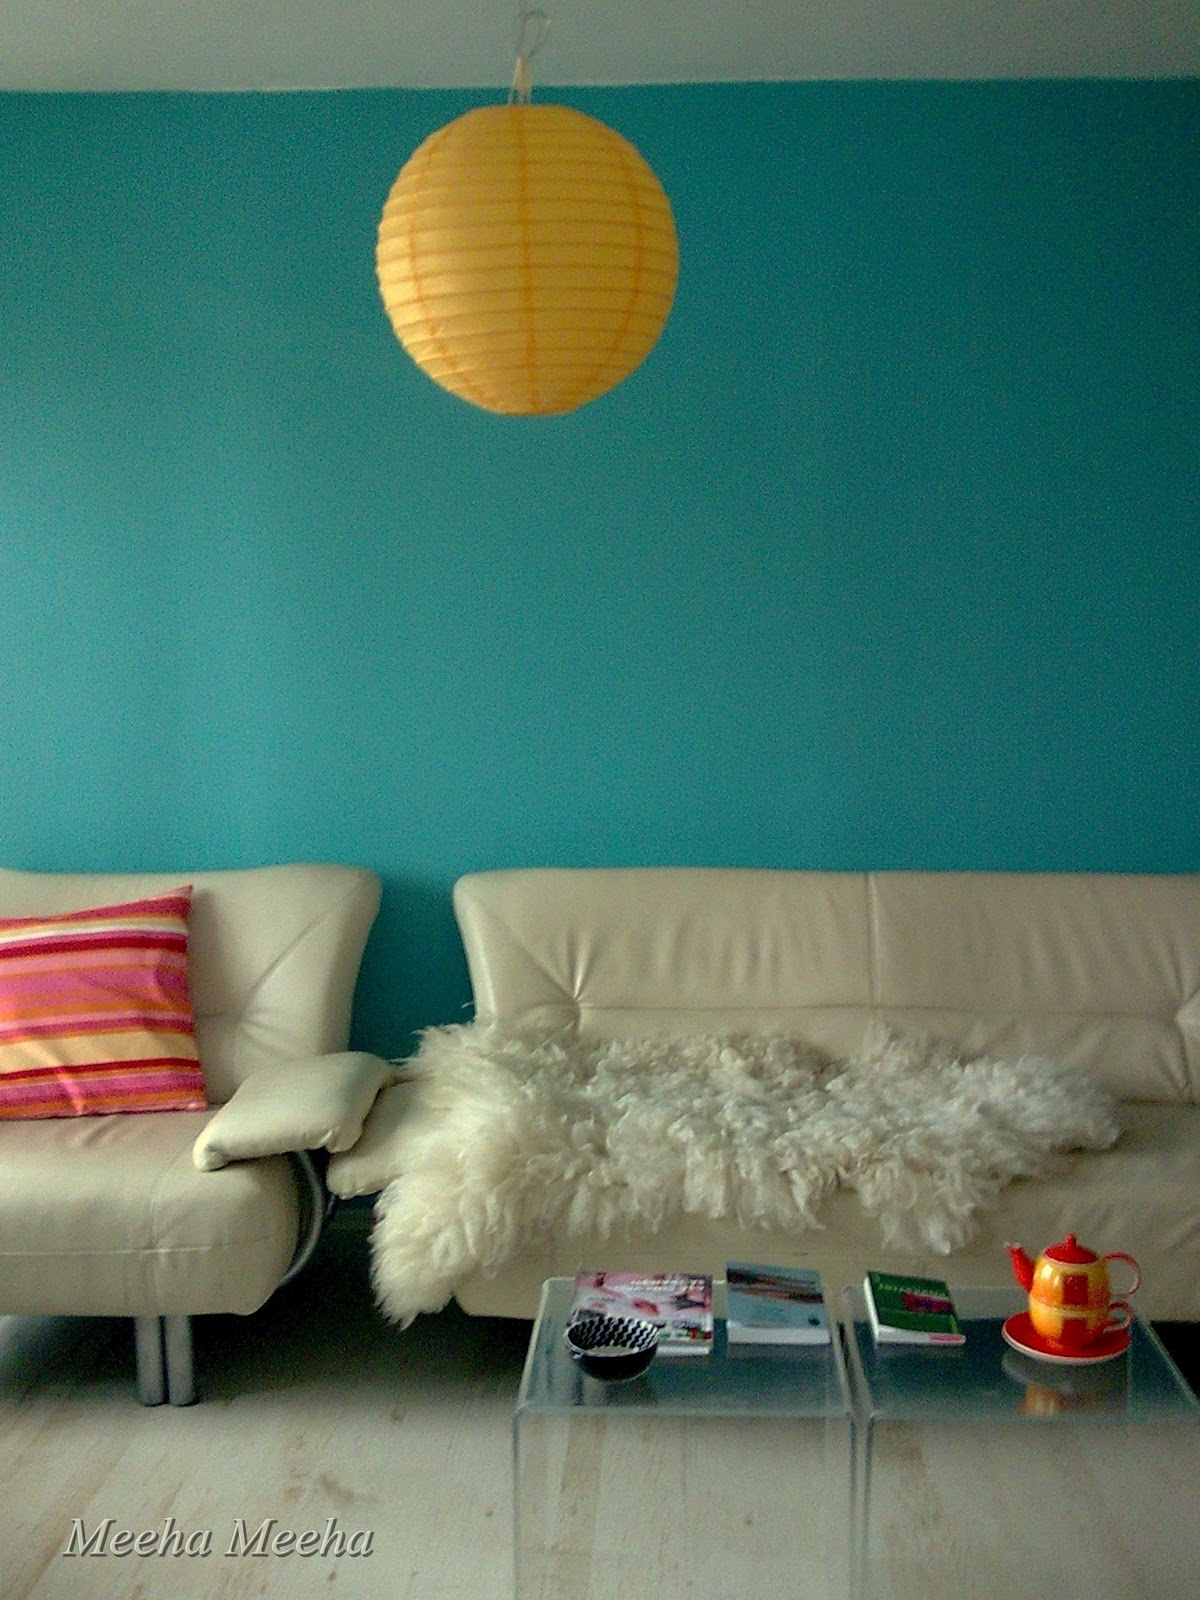 marvellous turquoise living room | Meeha Meeha: Turquoise living room